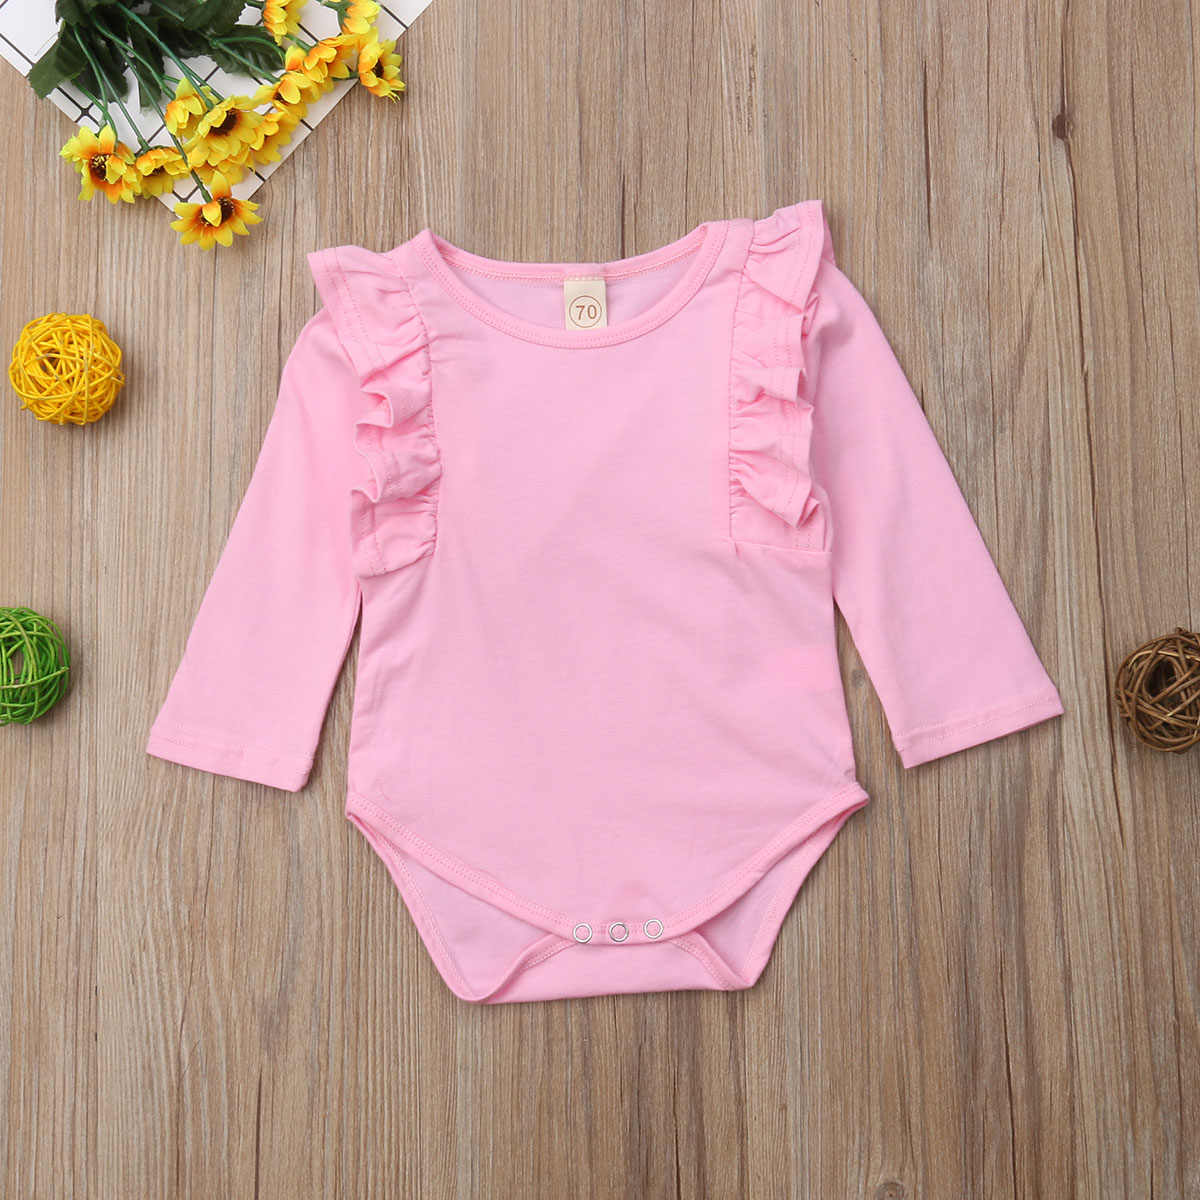 2018 Brand New Toddler Baby Girls Boys Causal Warm Autumn Bodysuits 5 Colors Long Ruffles Sleeve Solid Cotton Jumpsuits Playsuit